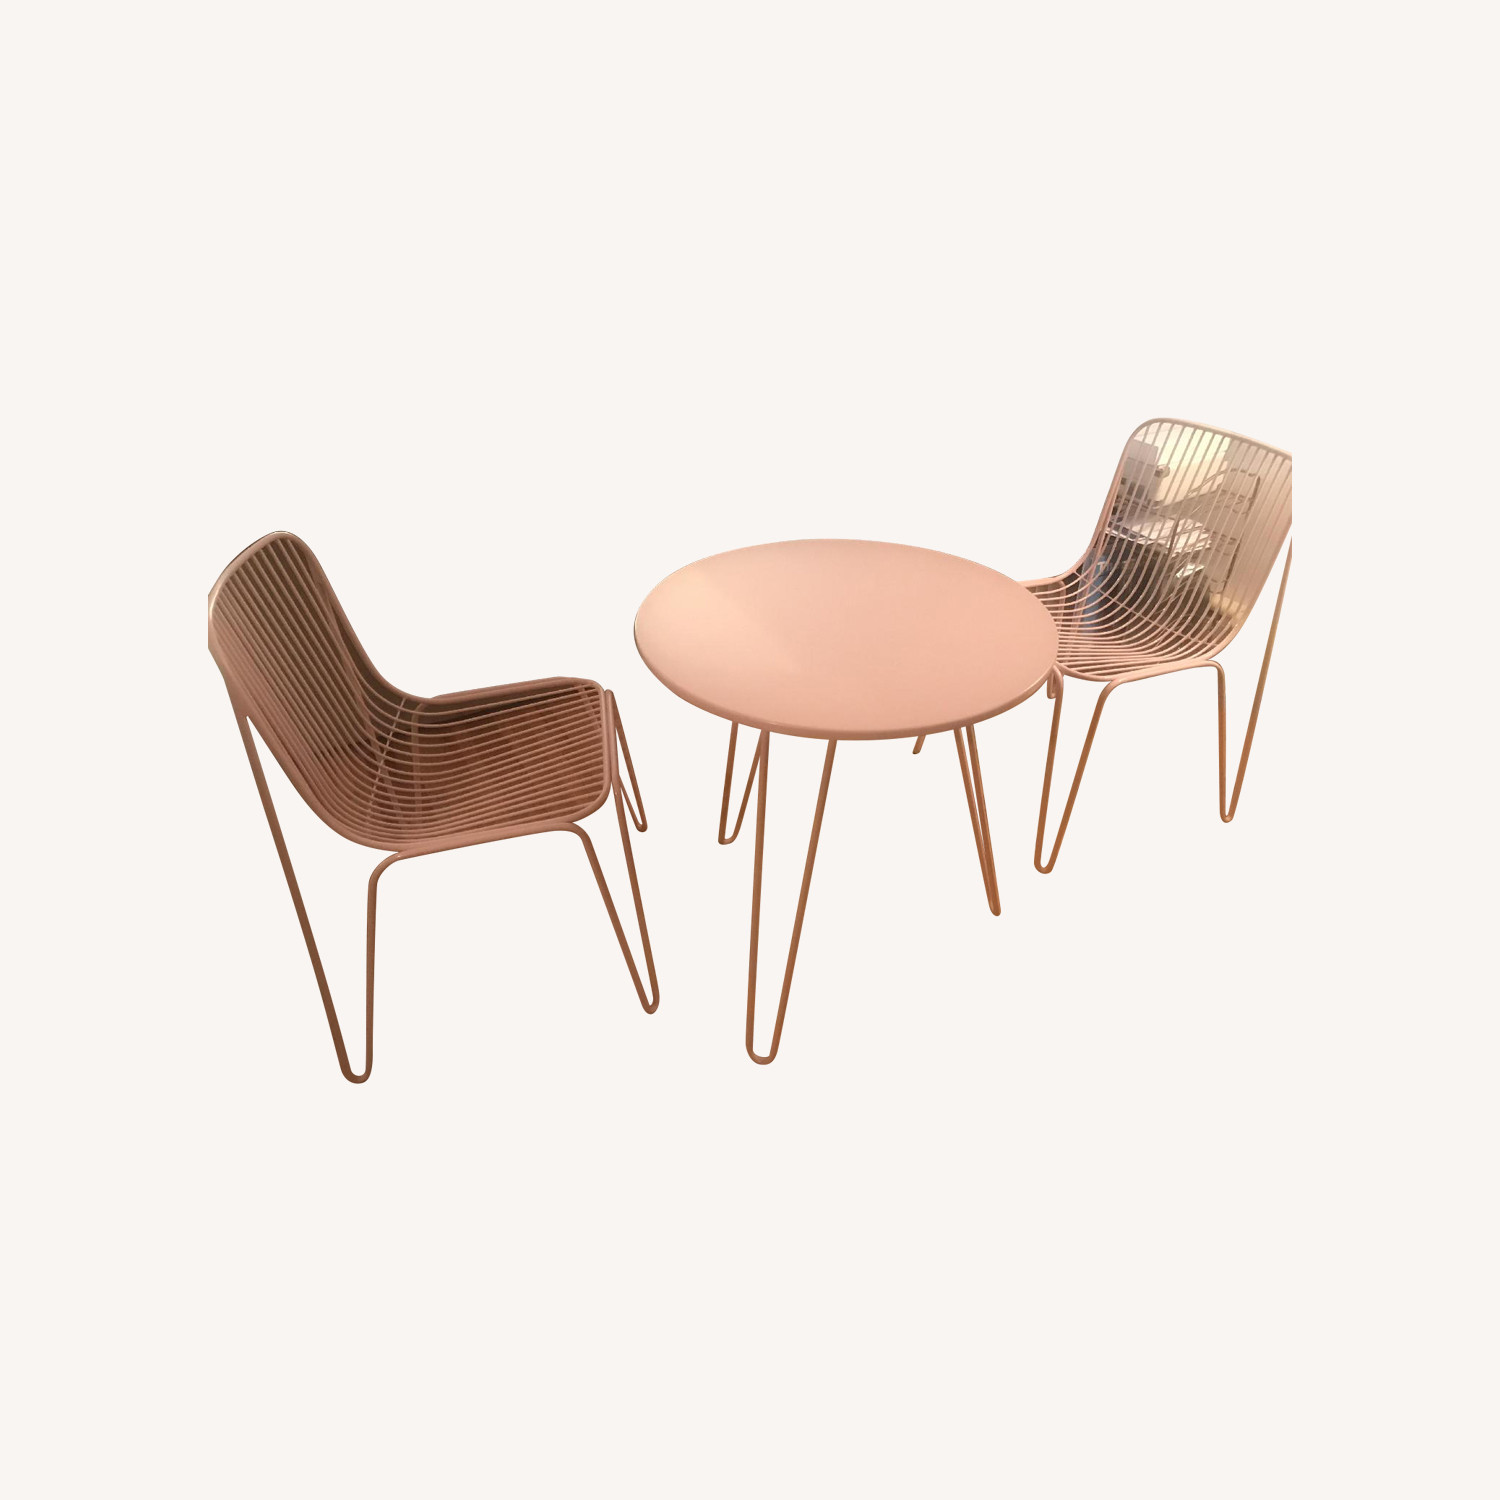 Urban Outfitters Bistro Table w/ 2 Chairs